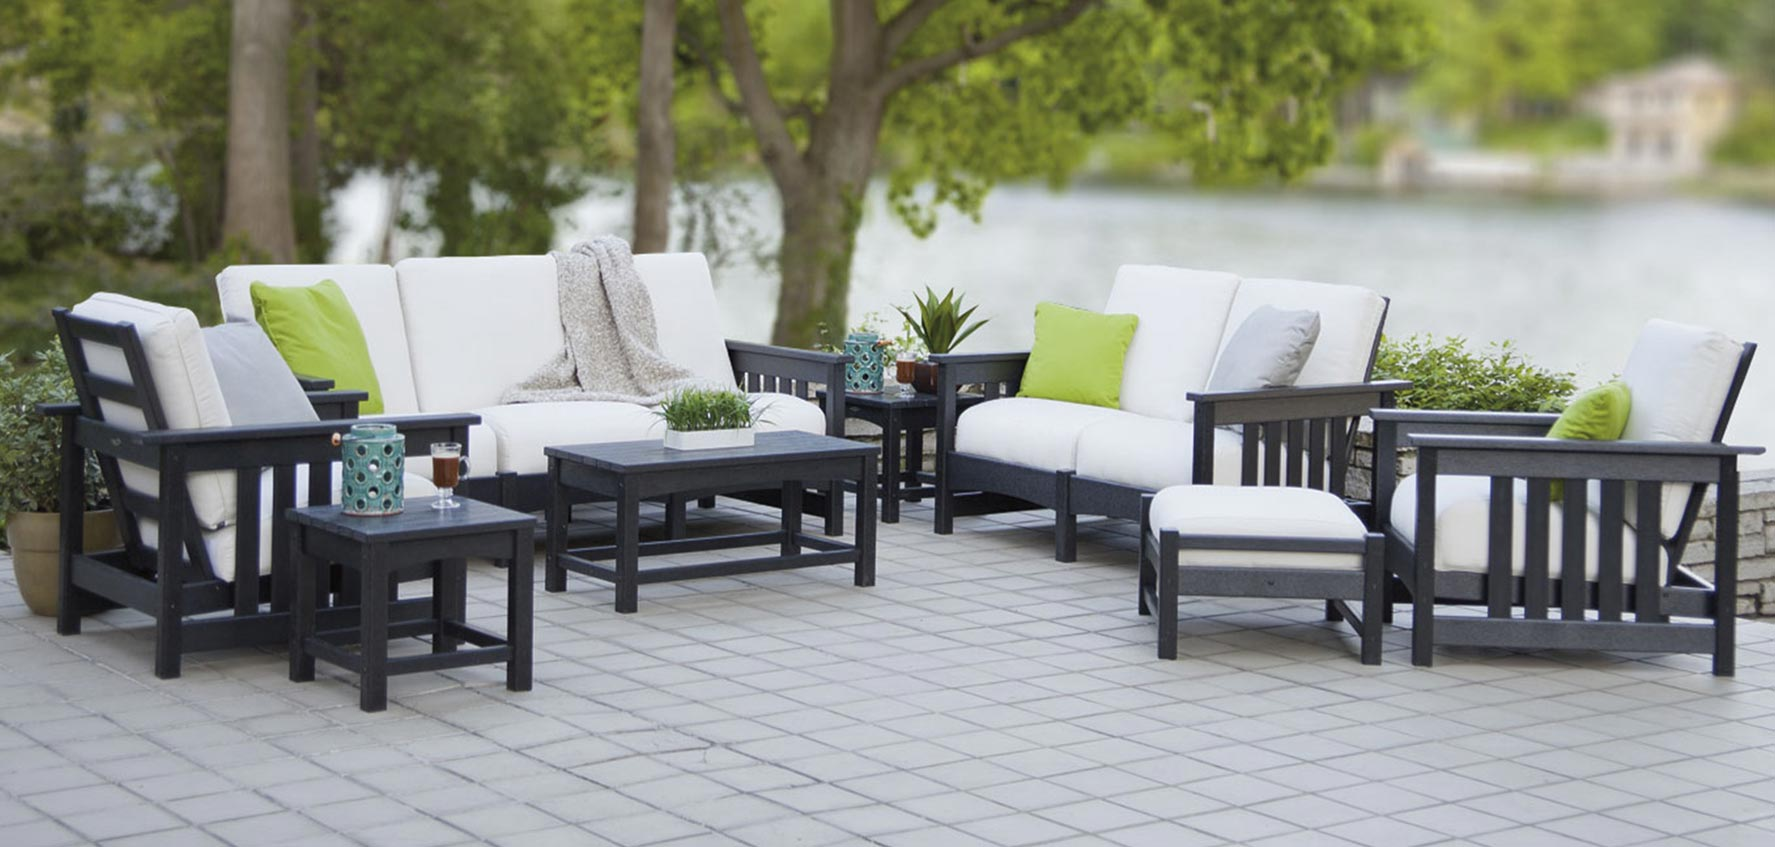 Gentil Outdoor Patio Furniture Sets